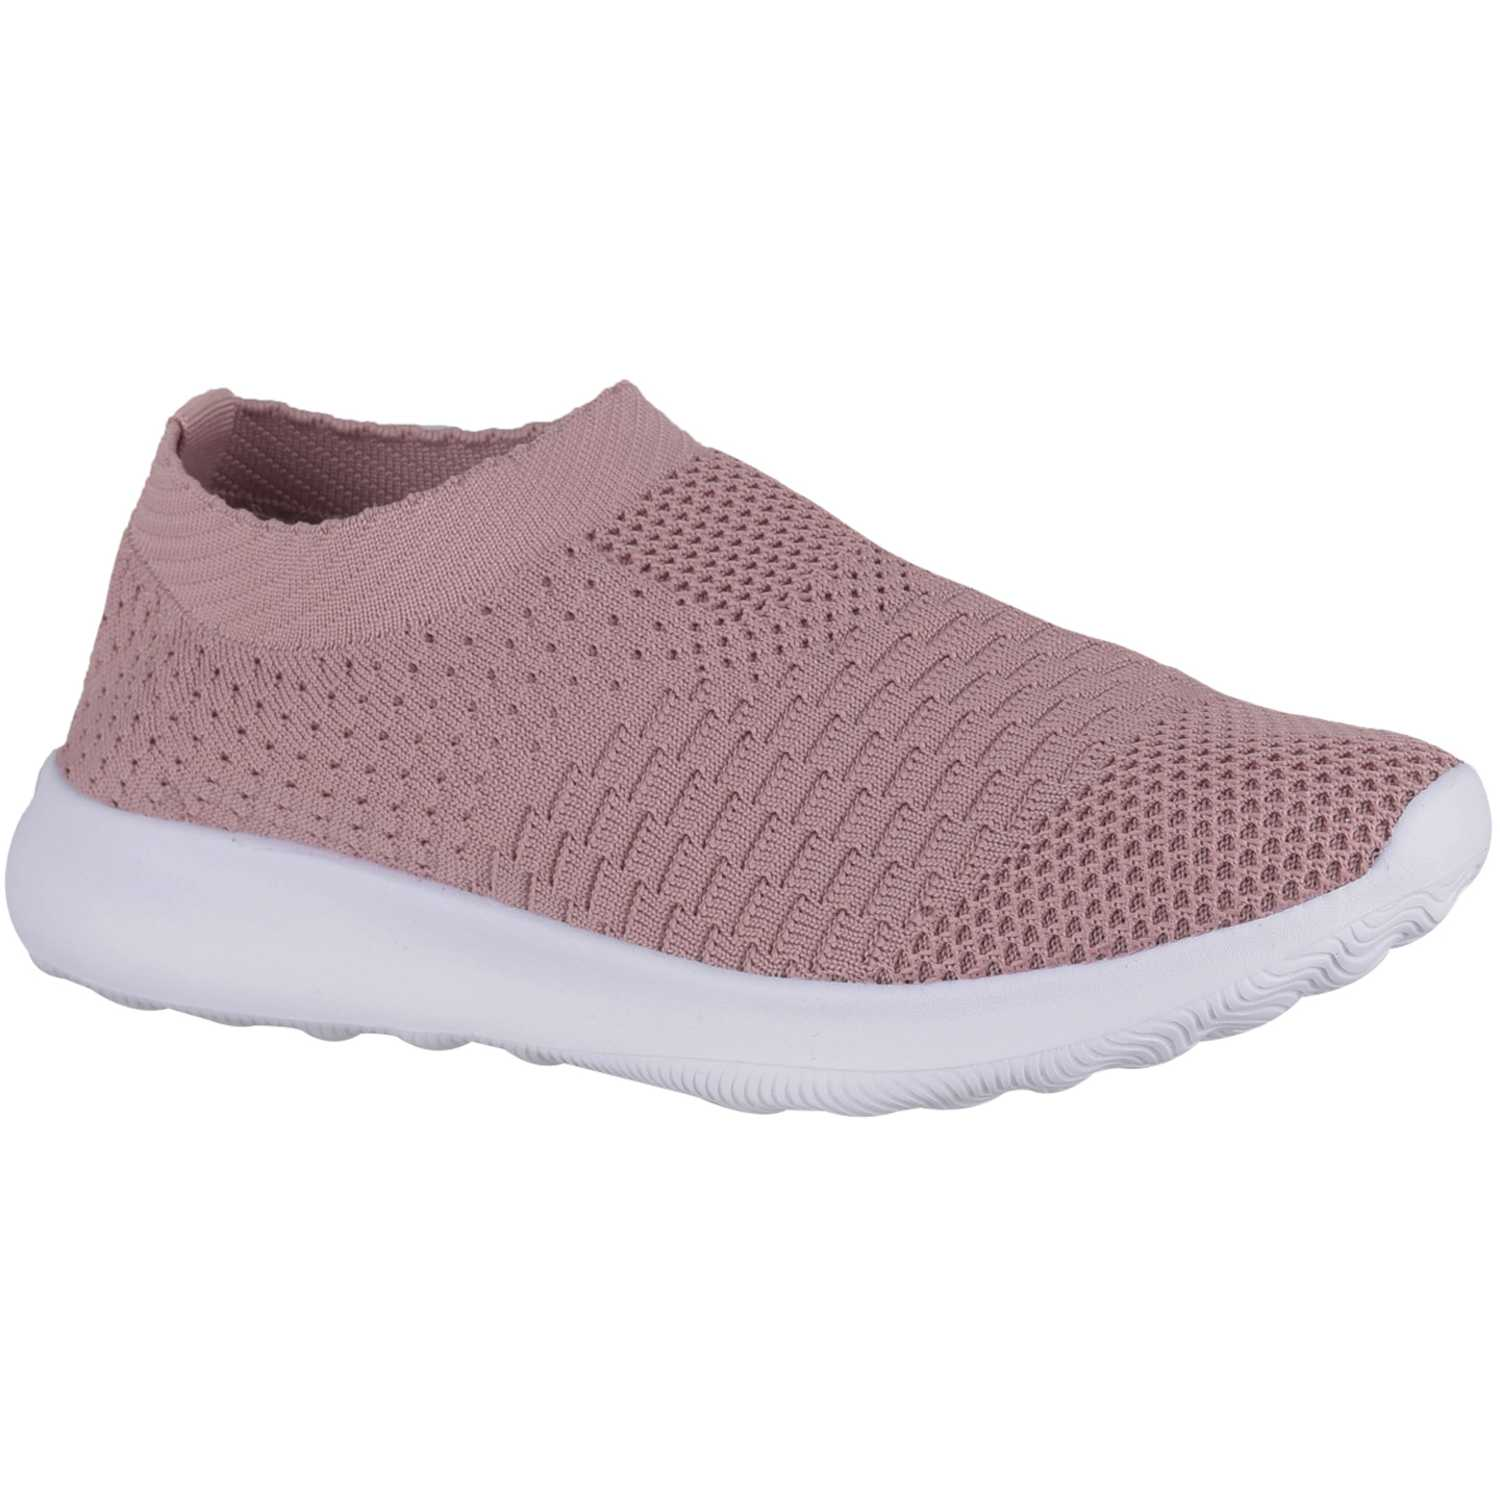 Platanitos z 708 Rosado Zapatillas Fashion